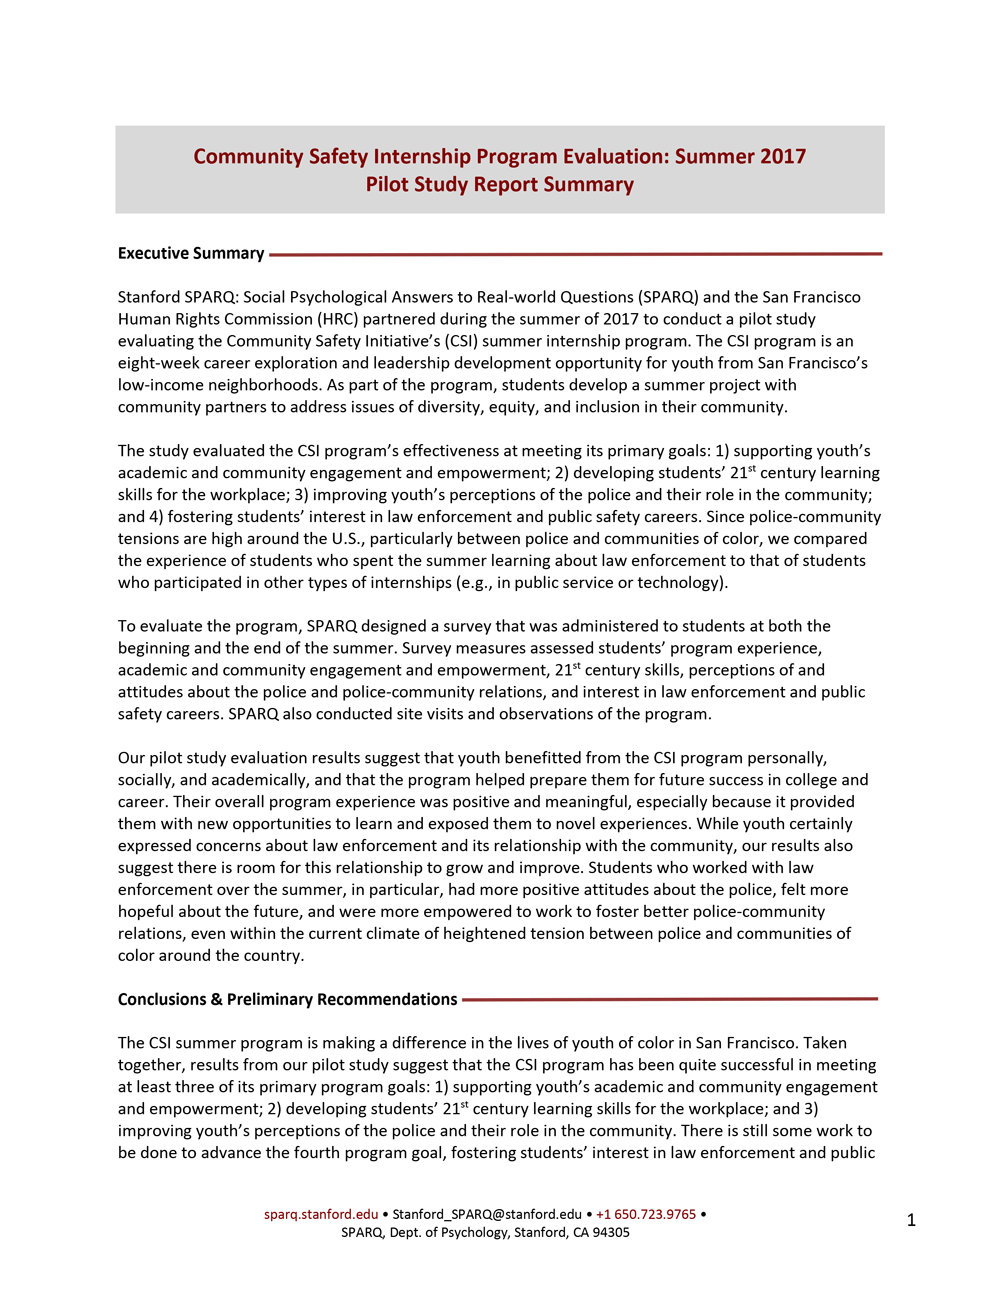 CSI Internship Program Evaluation - Summer 2017 Pilot Study Report Summary